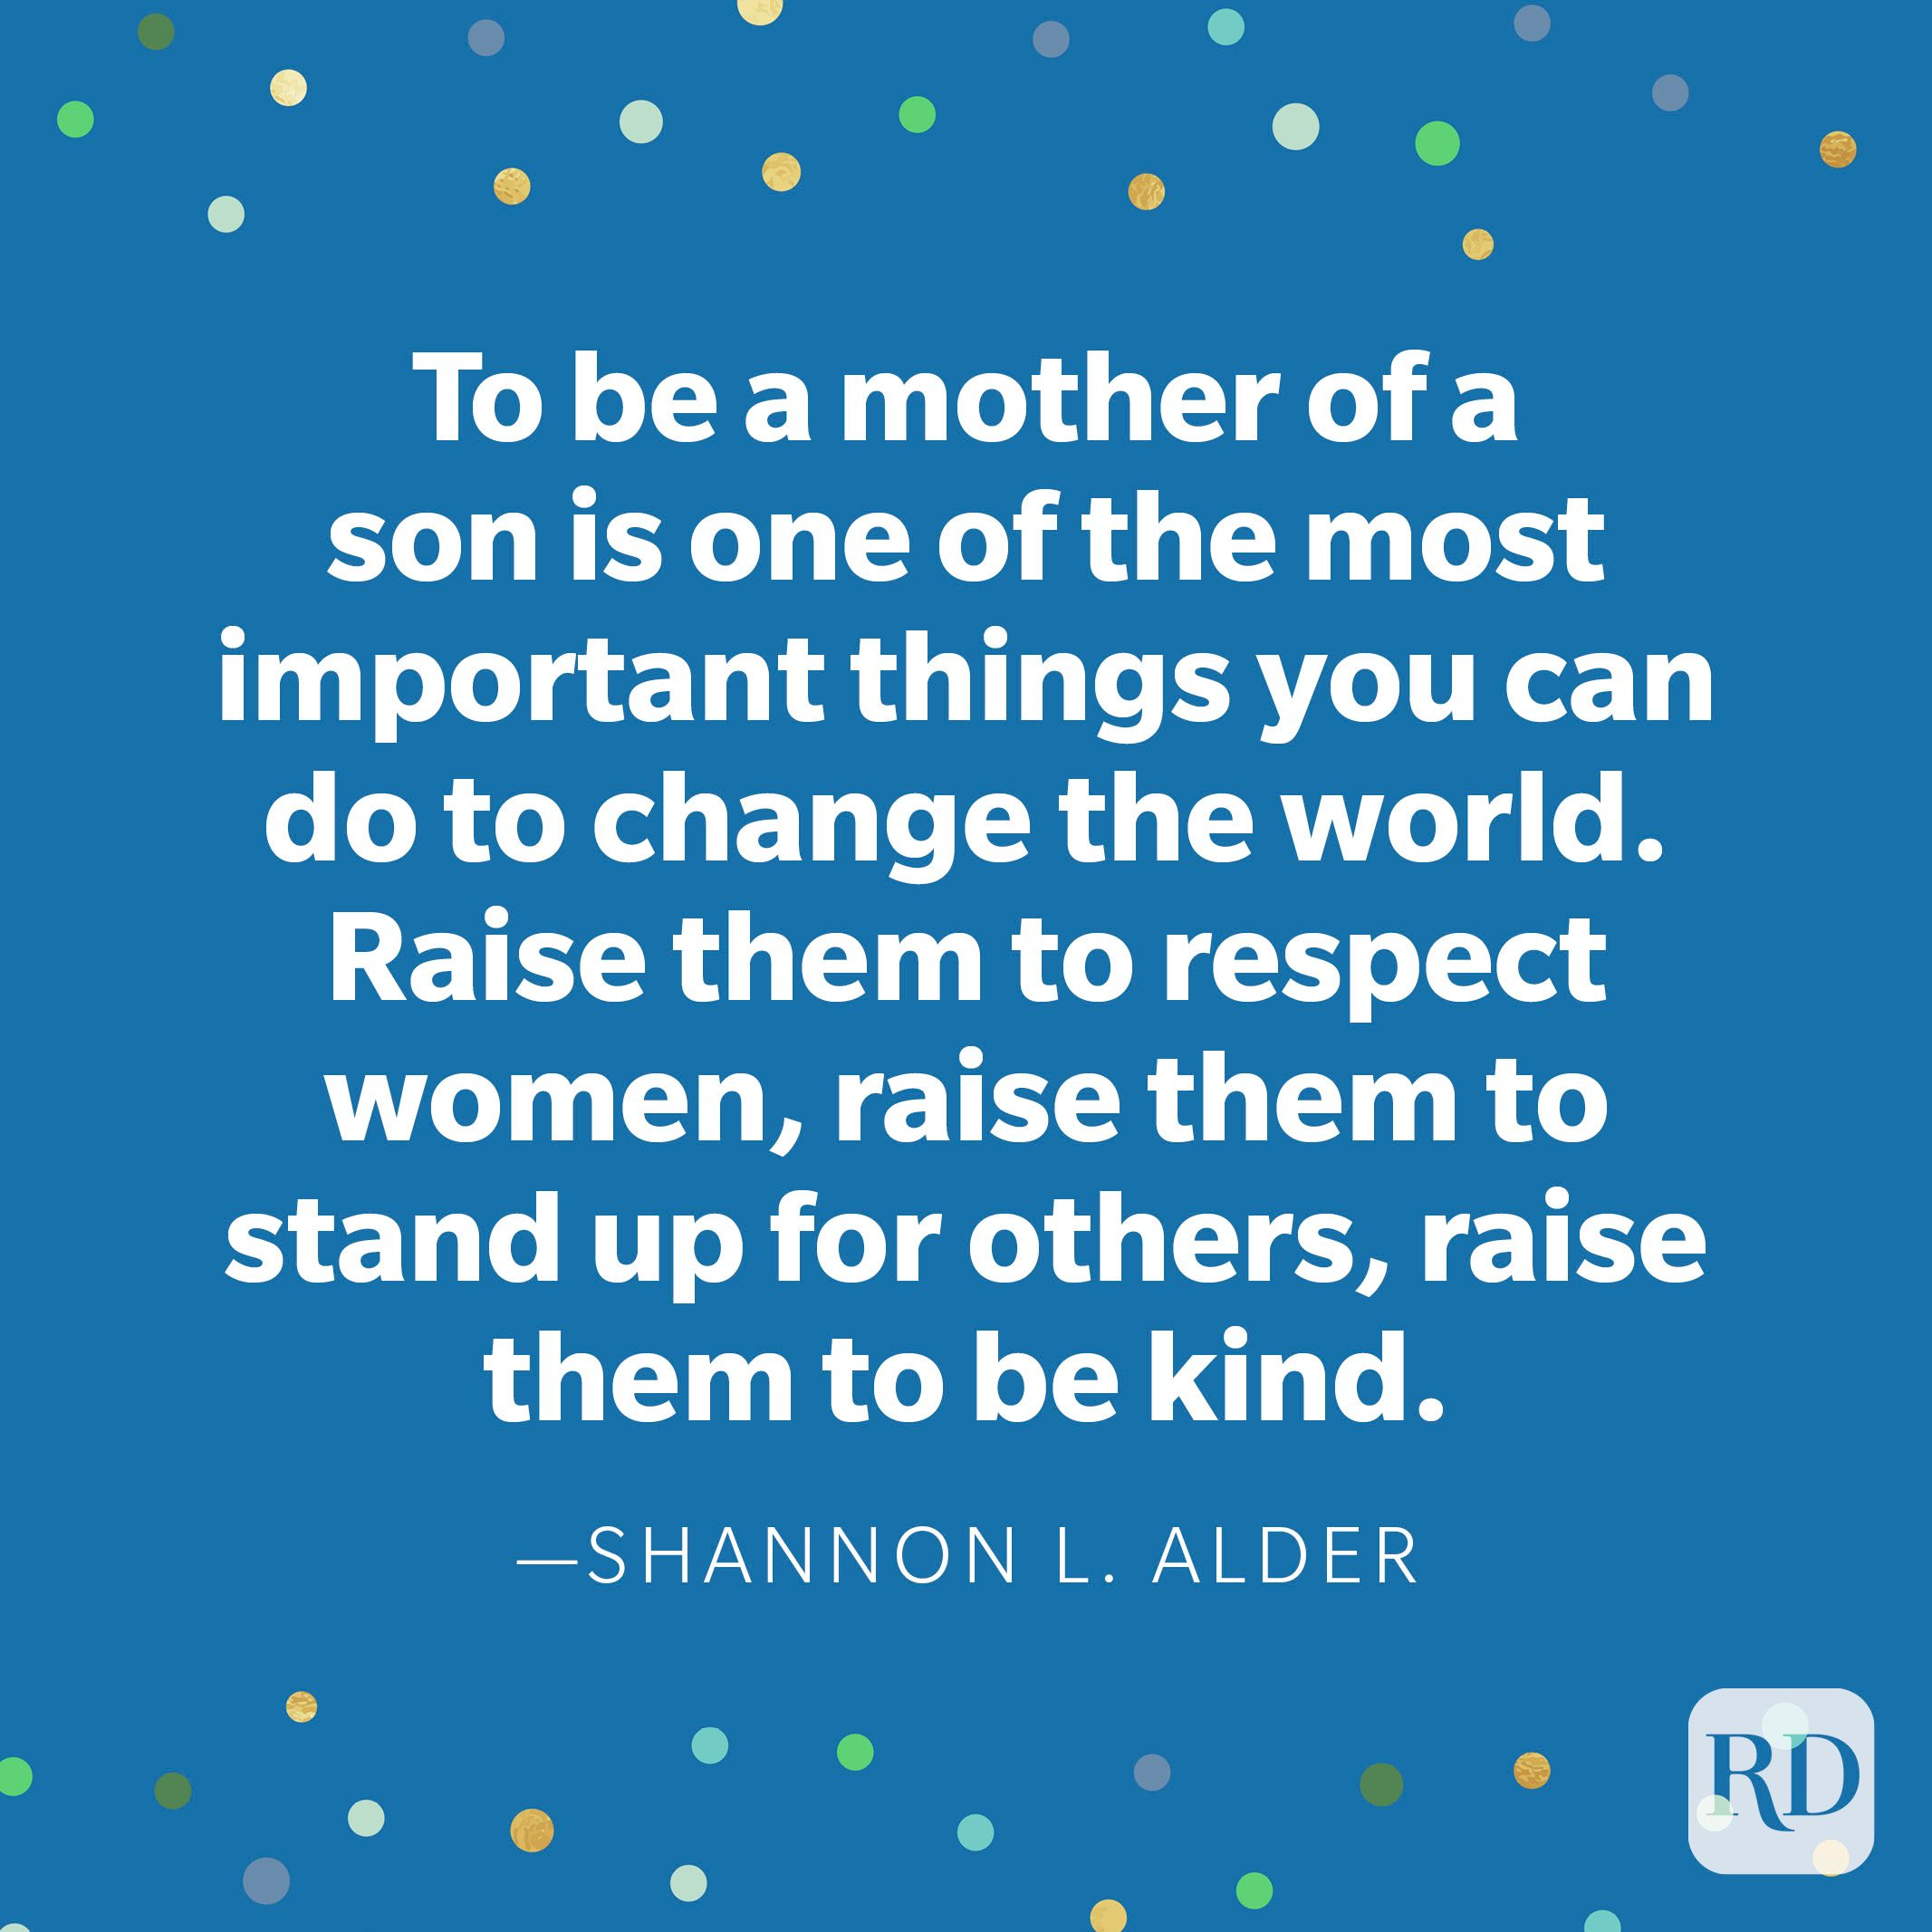 """To be a mother of a son is one of the most important things you can do to change the world. Raise them to respect women, raise them to stand up for others, raise them to be kind."" —Shannon L. Alder"